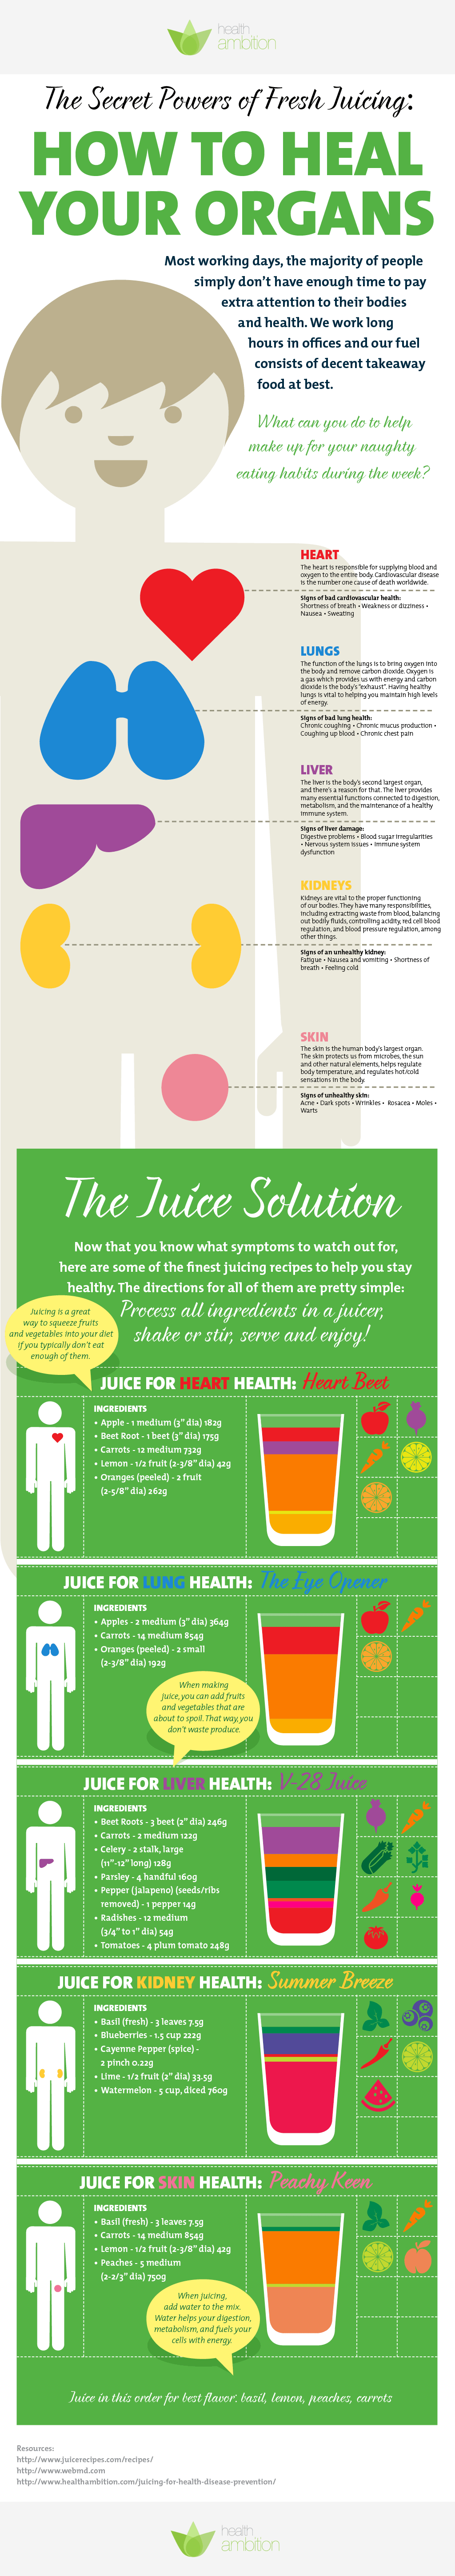 health_ambition_juice